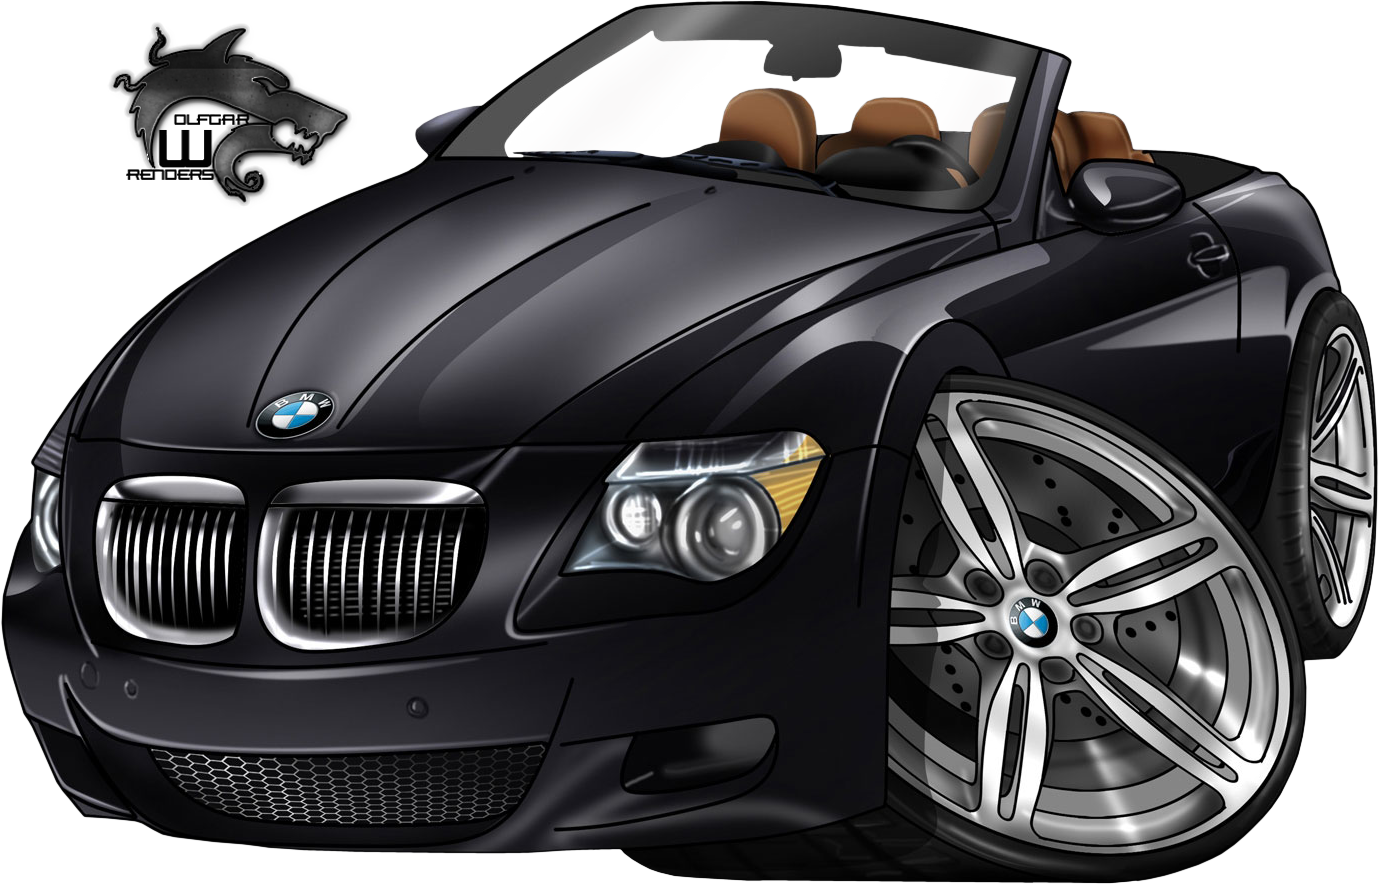 Clipart convertible car graphic royalty free library Vehicle Renders - BMW-Cartoon-Car - Signature Labs Render Gallery ... graphic royalty free library